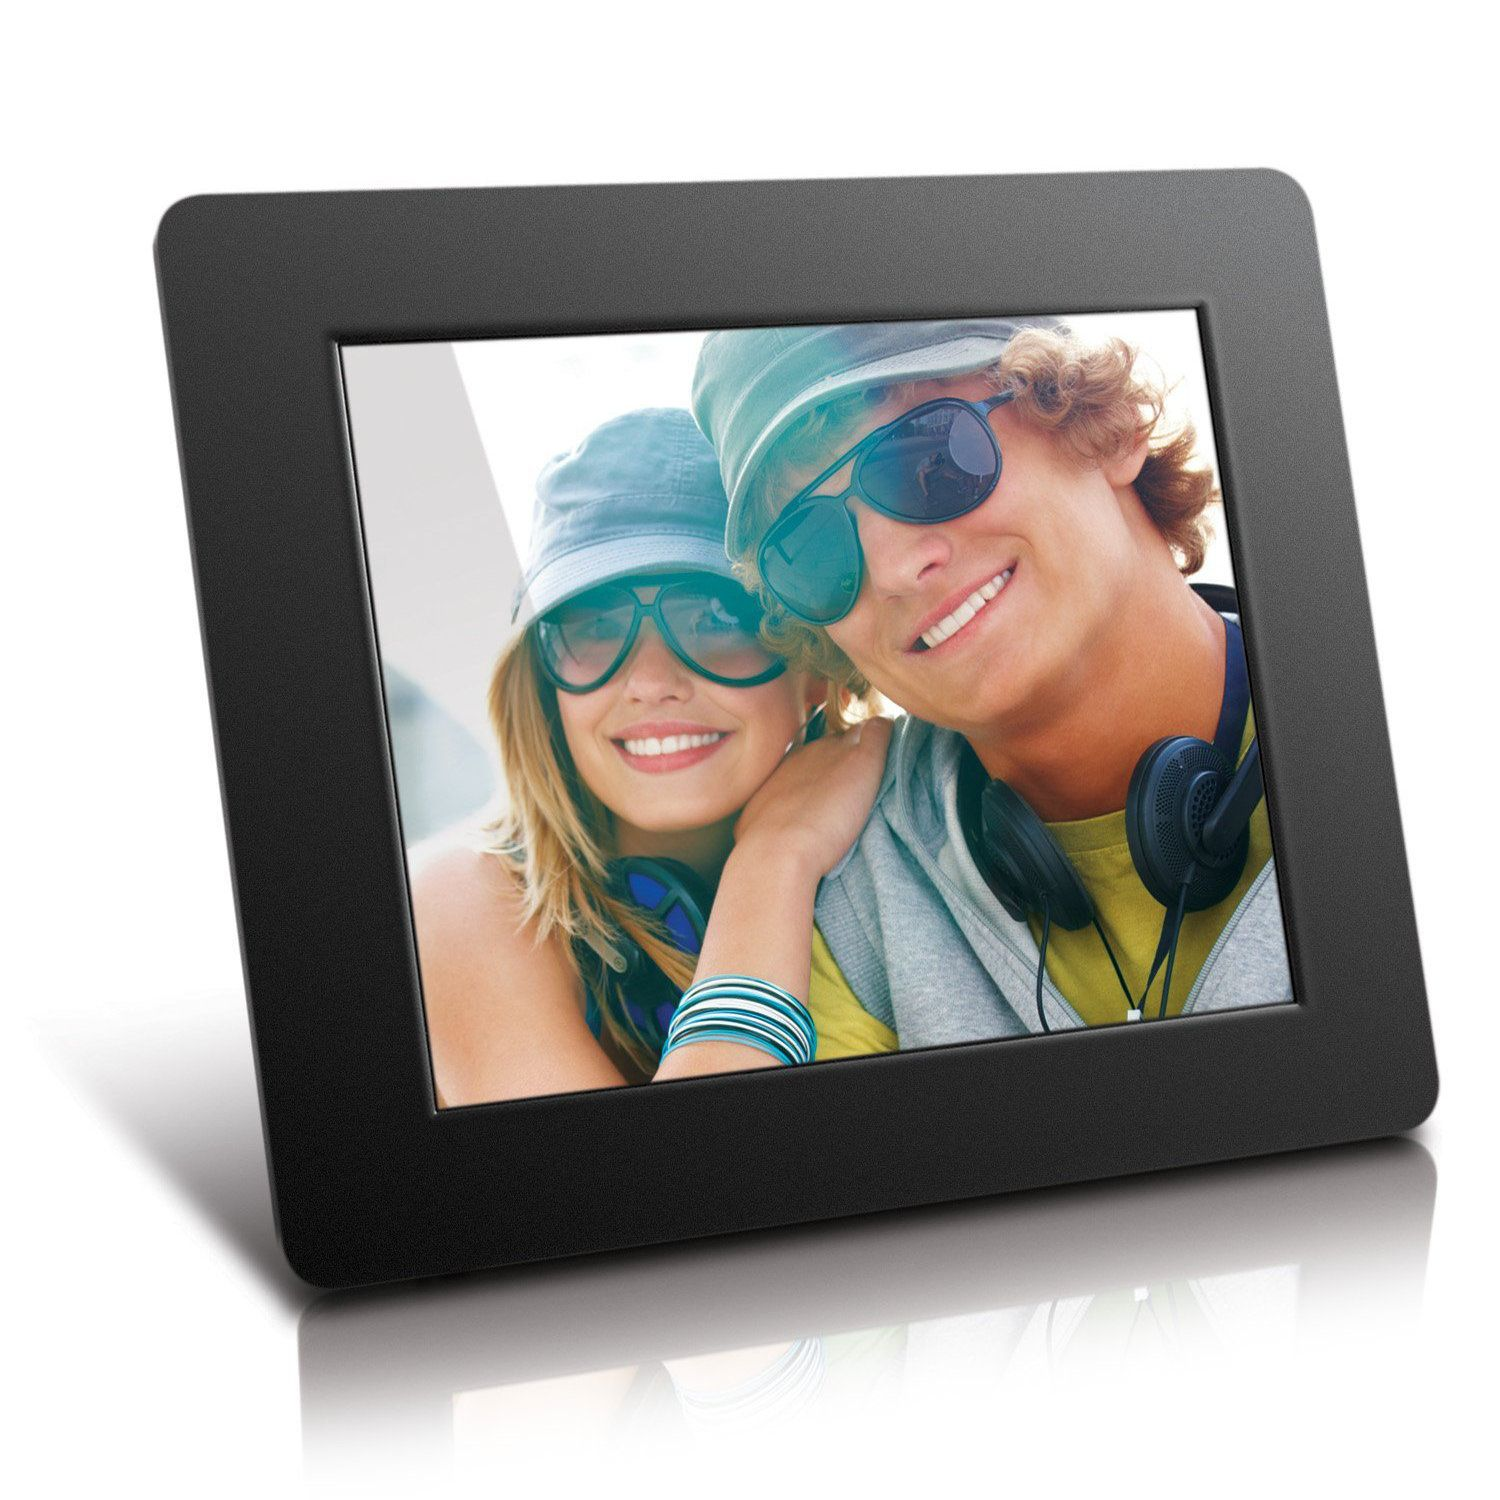 9 Best Digital Photo Frames of 2018 - Electronic Picture Frames in ...